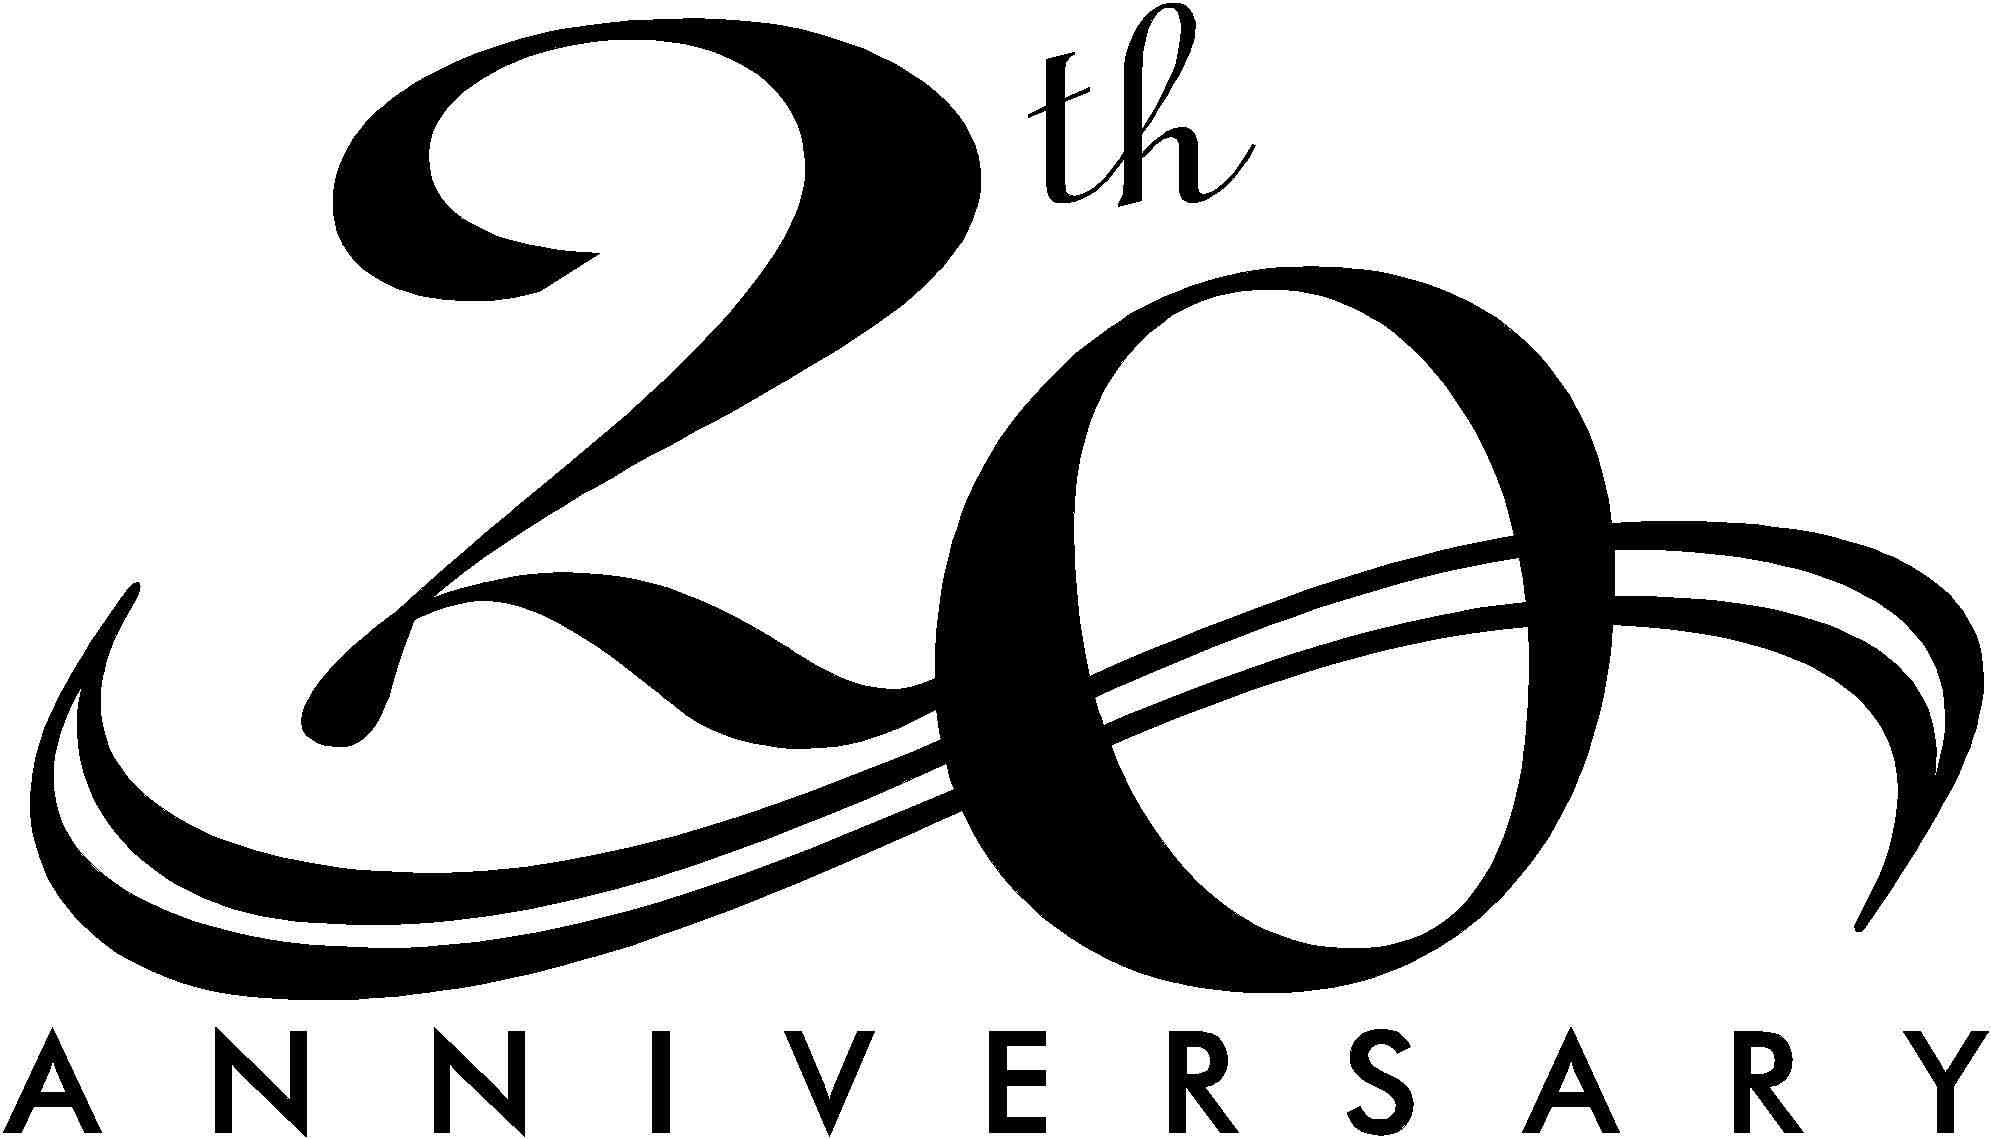 th clip art. Anniversary clipart business